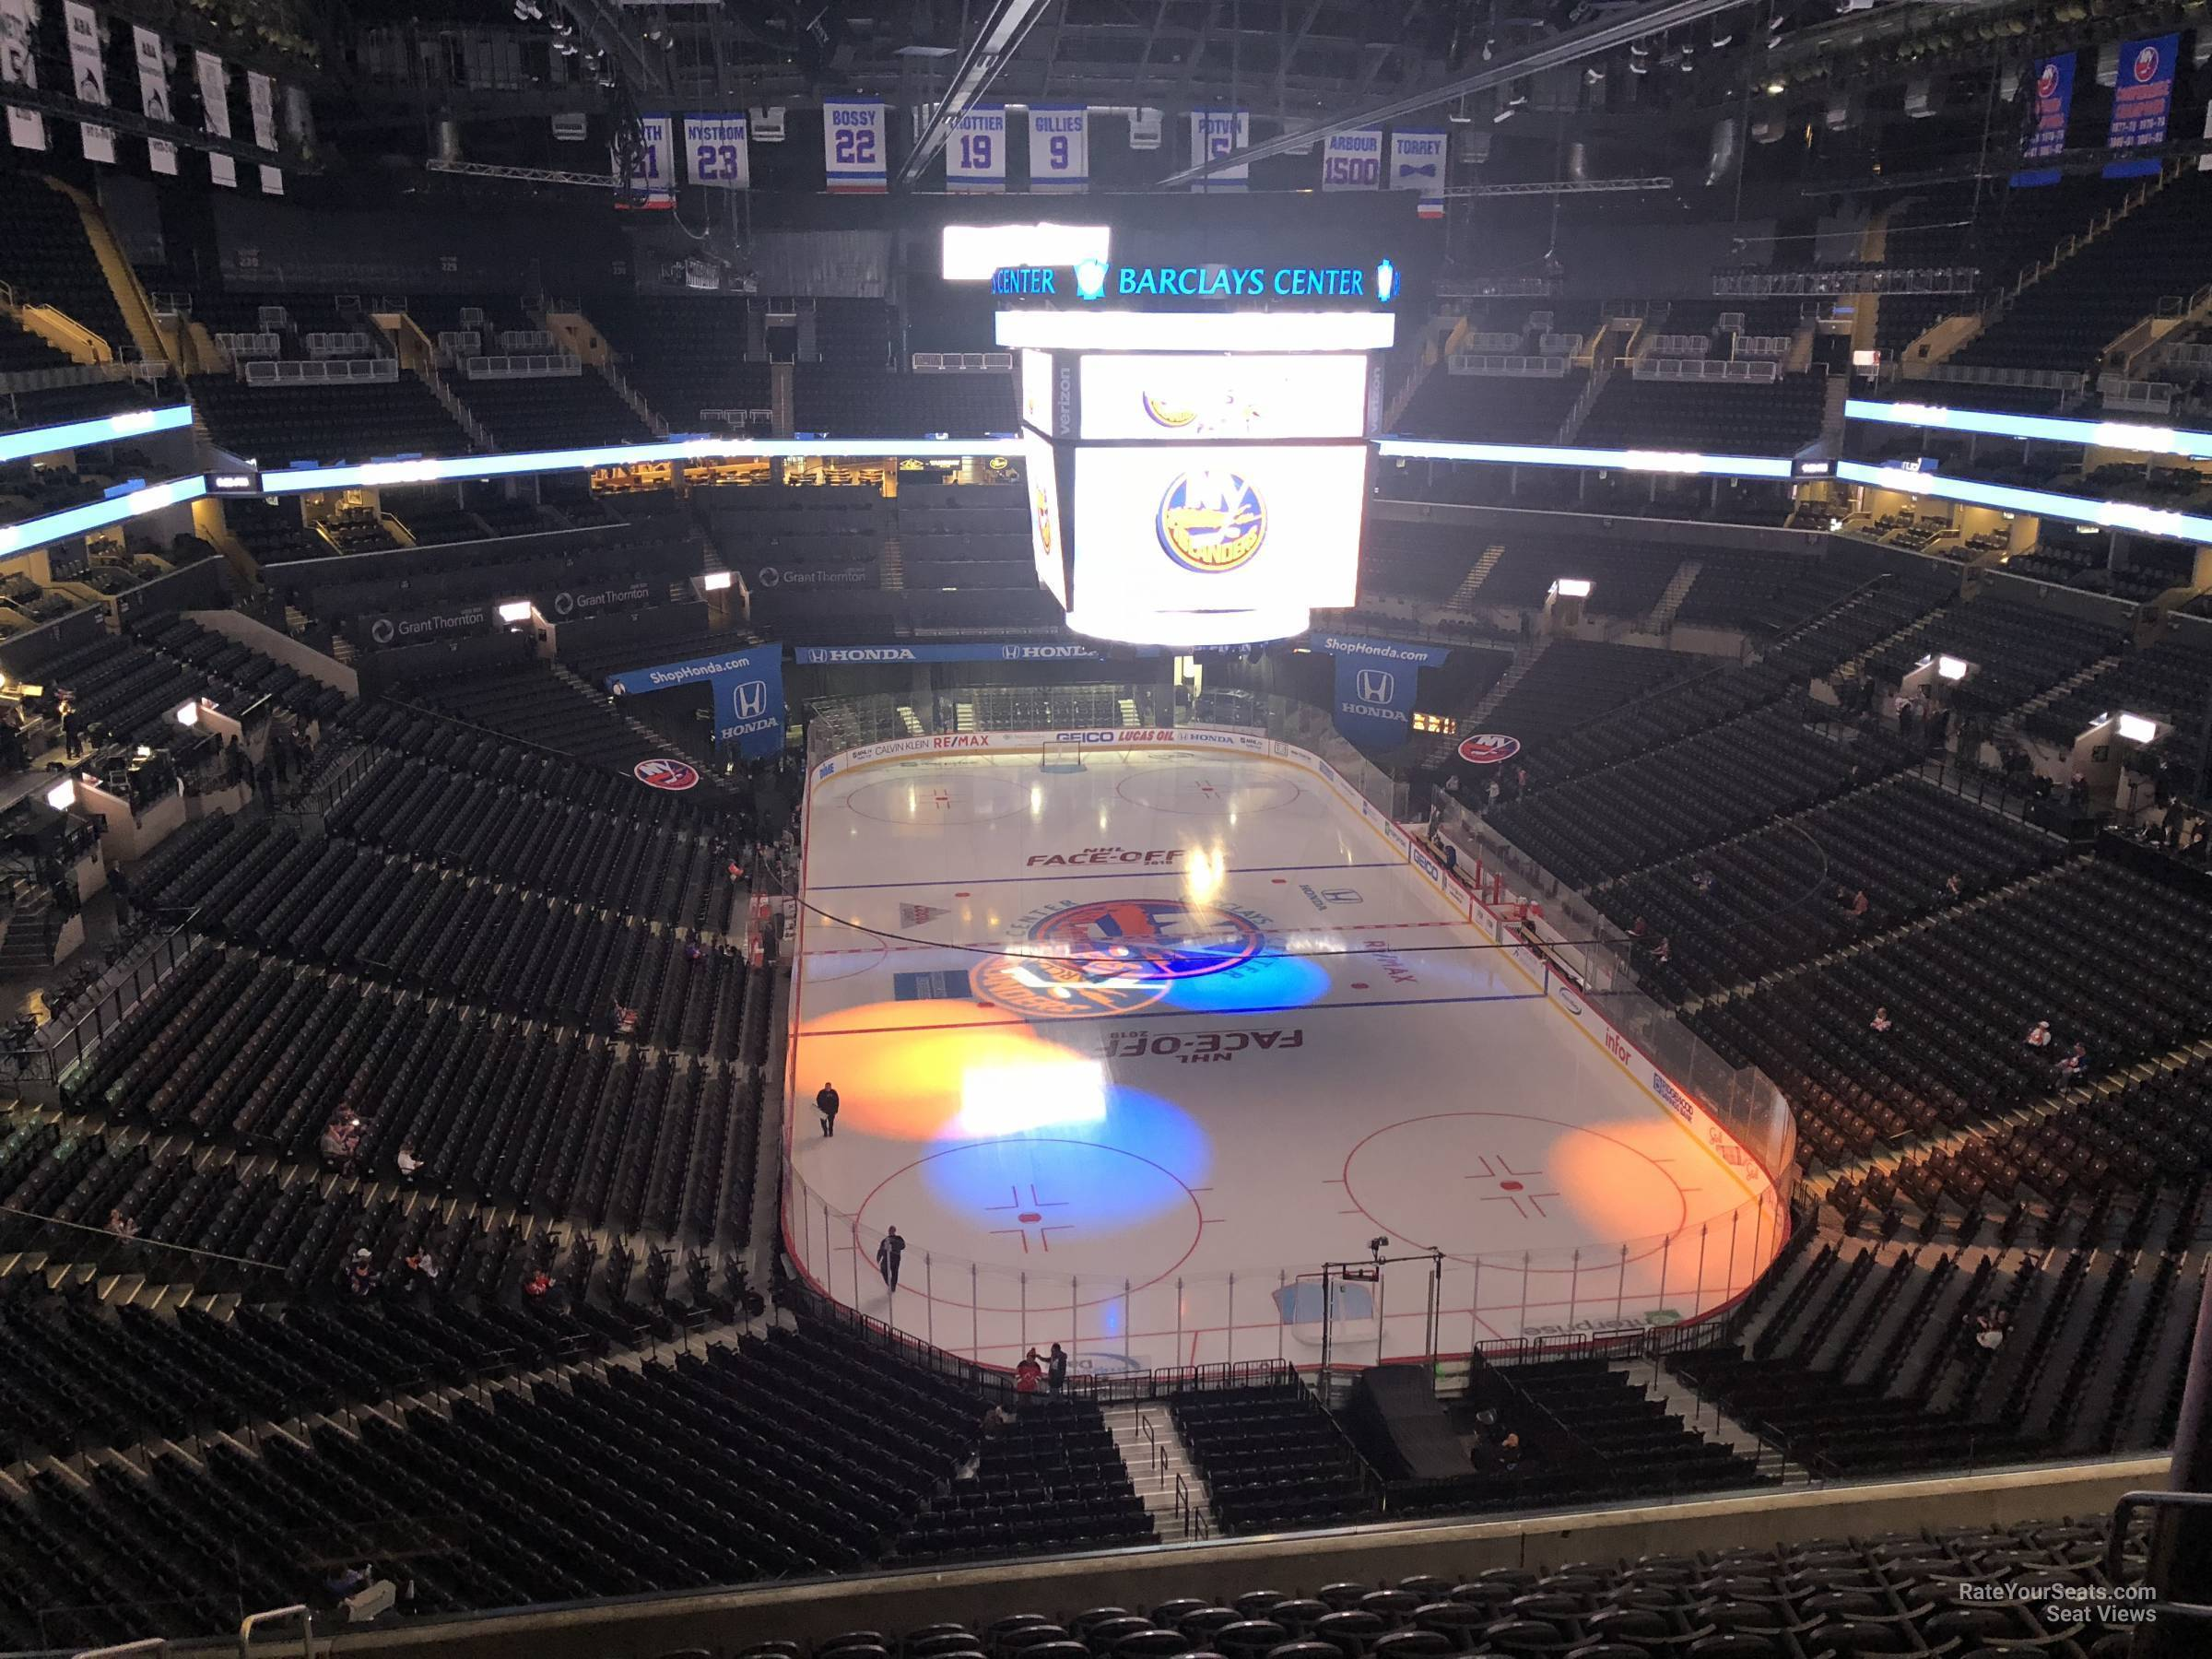 barclays center section 217 - new york islanders - rateyourseats